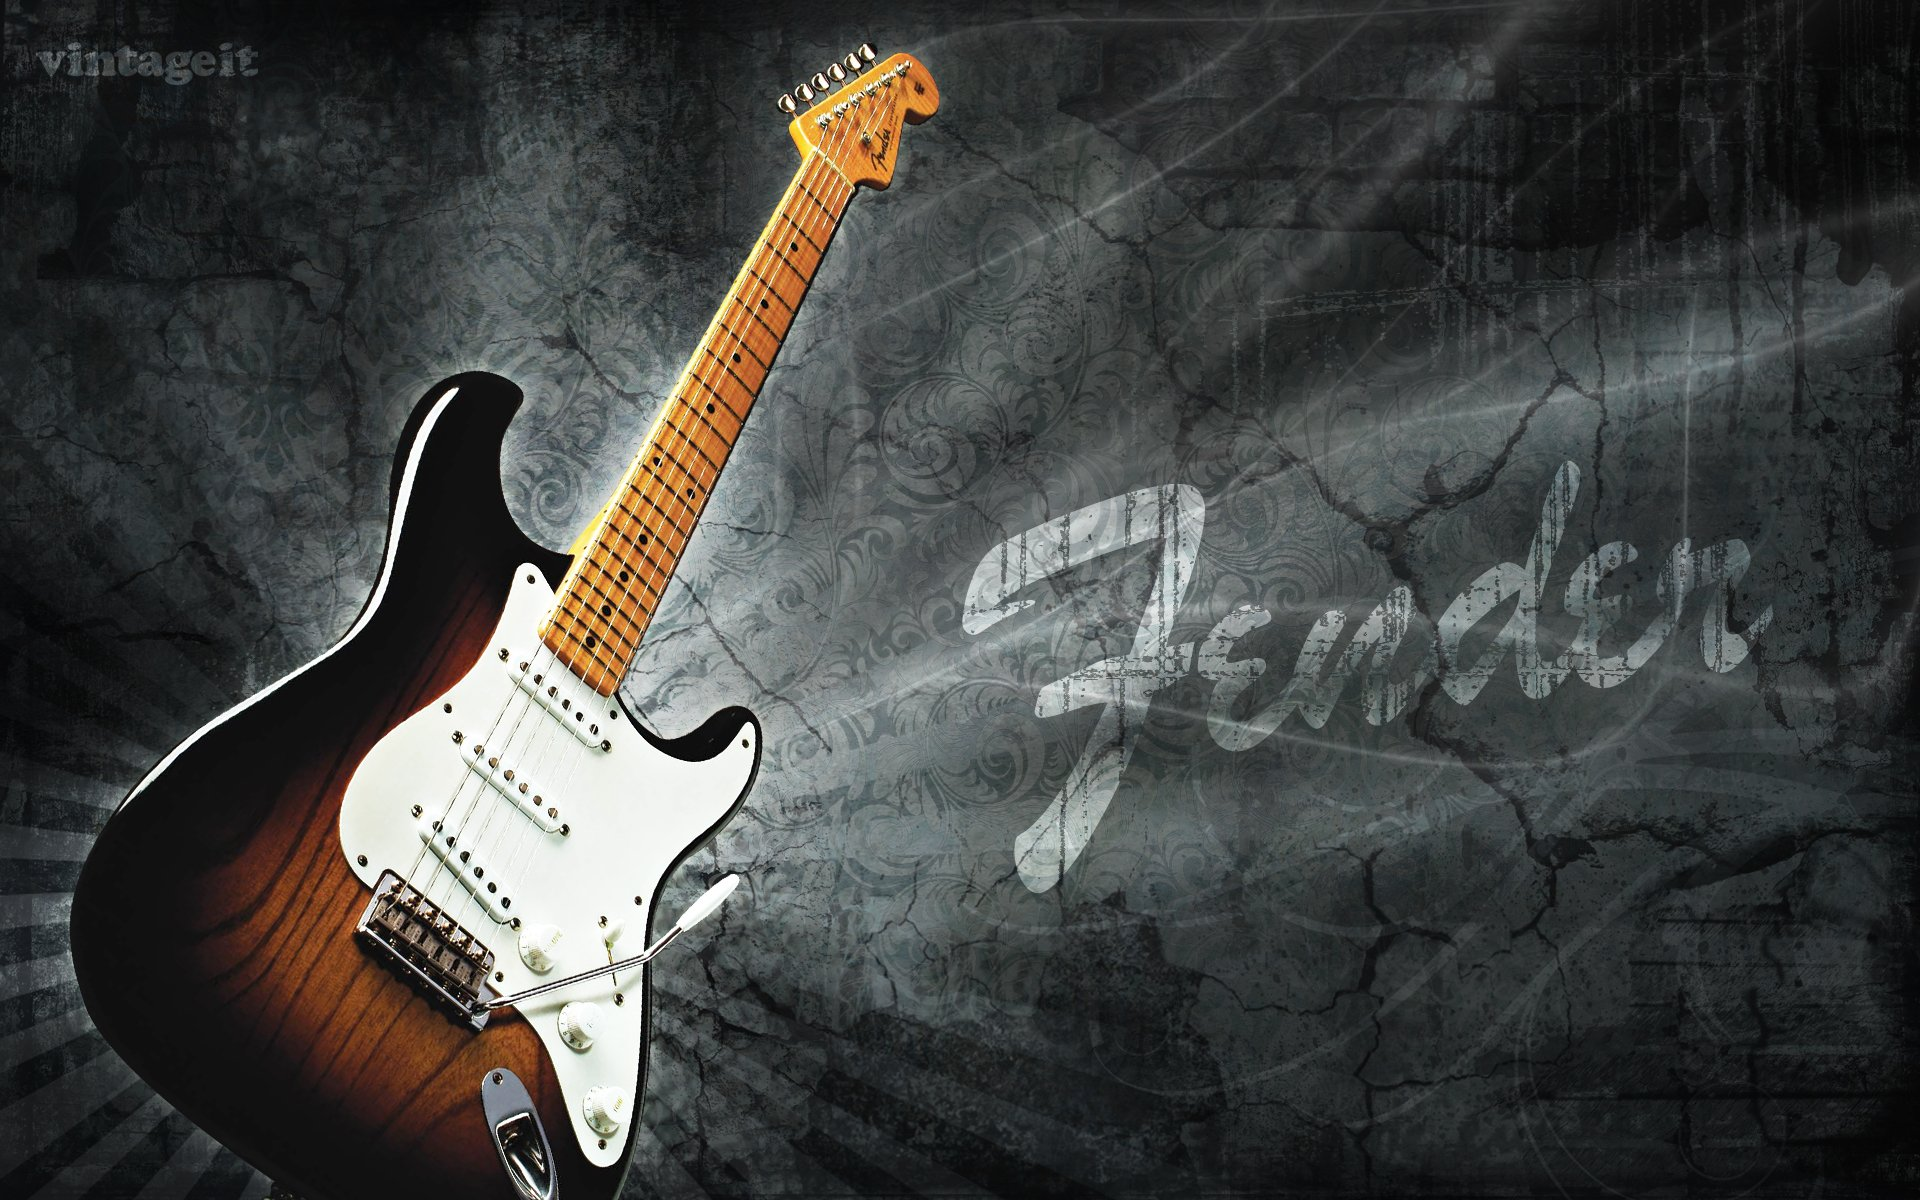 Fender Wallpaper Images amp Pictures   Becuo 1920x1200